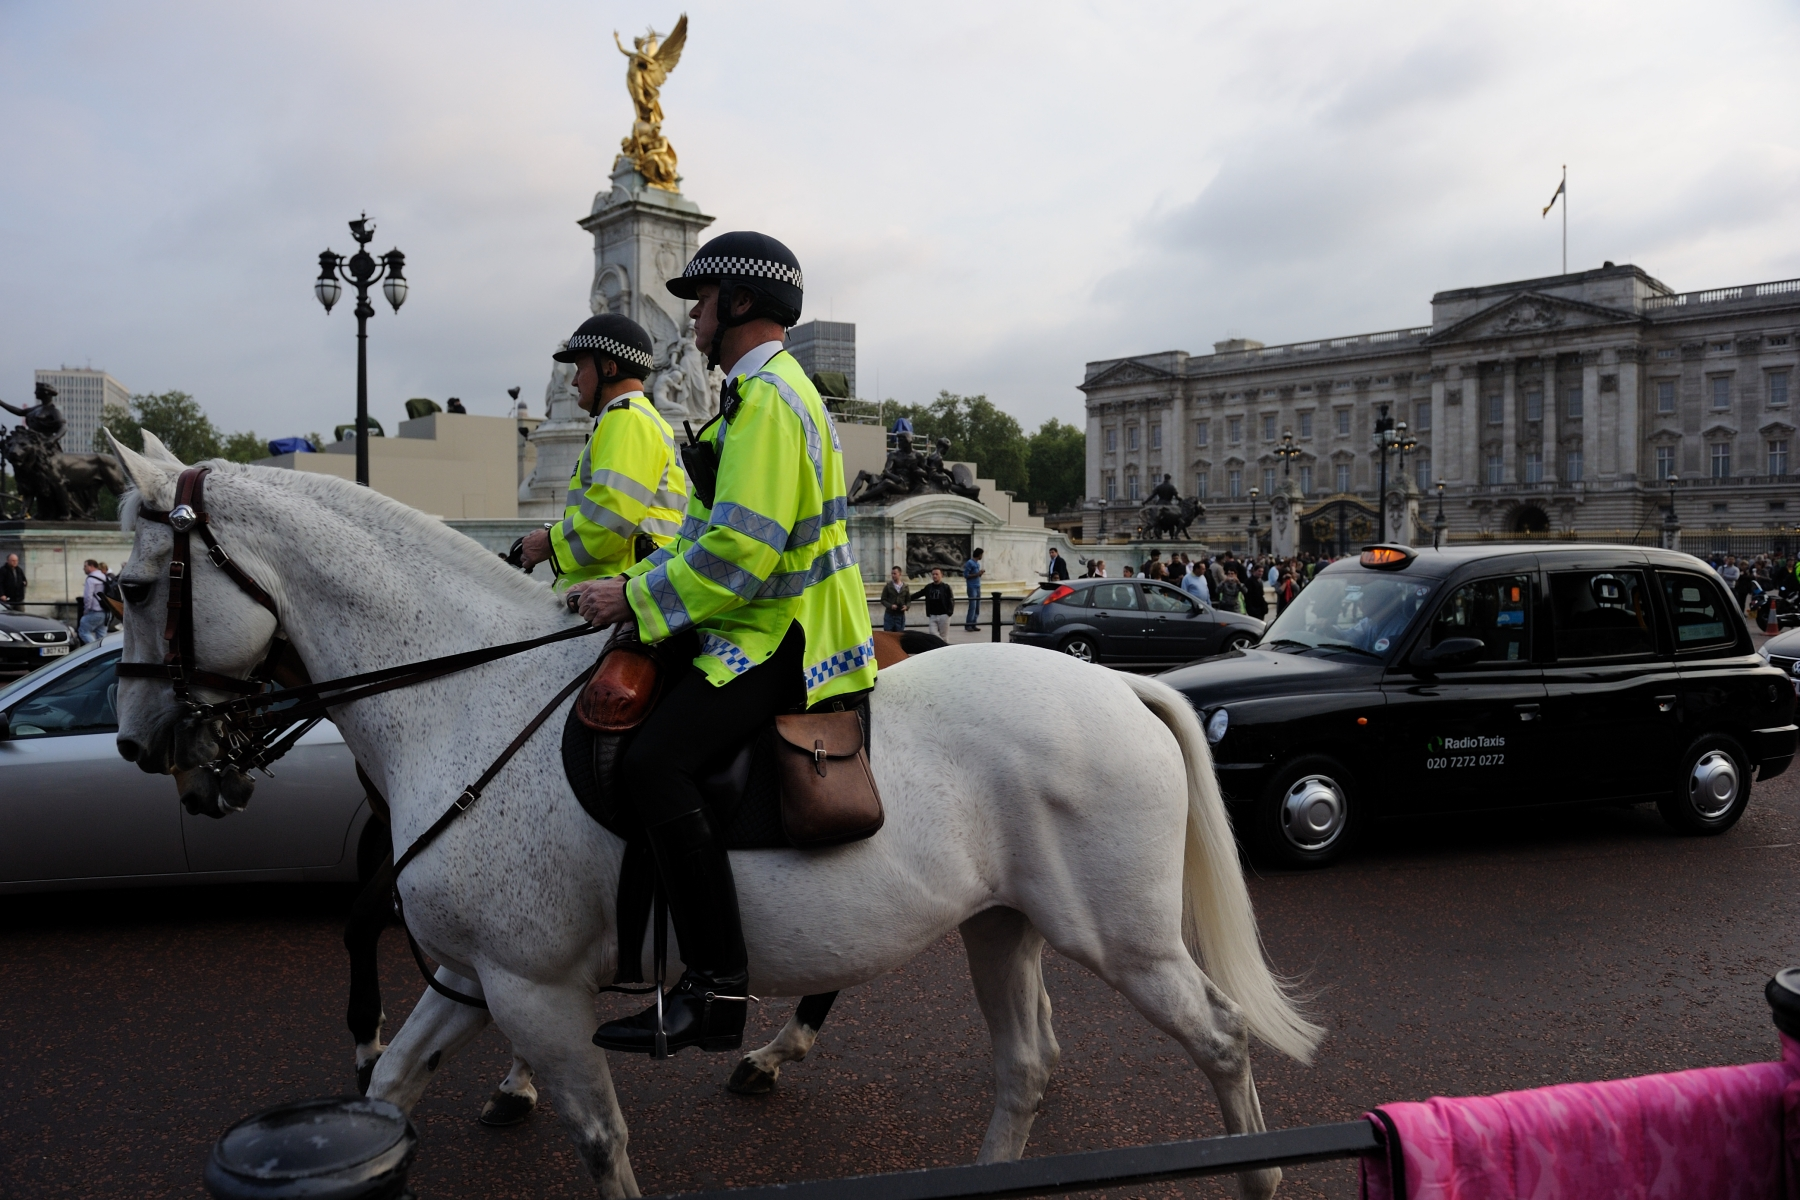 Security patrolling the Buckingham Palace surroundings.